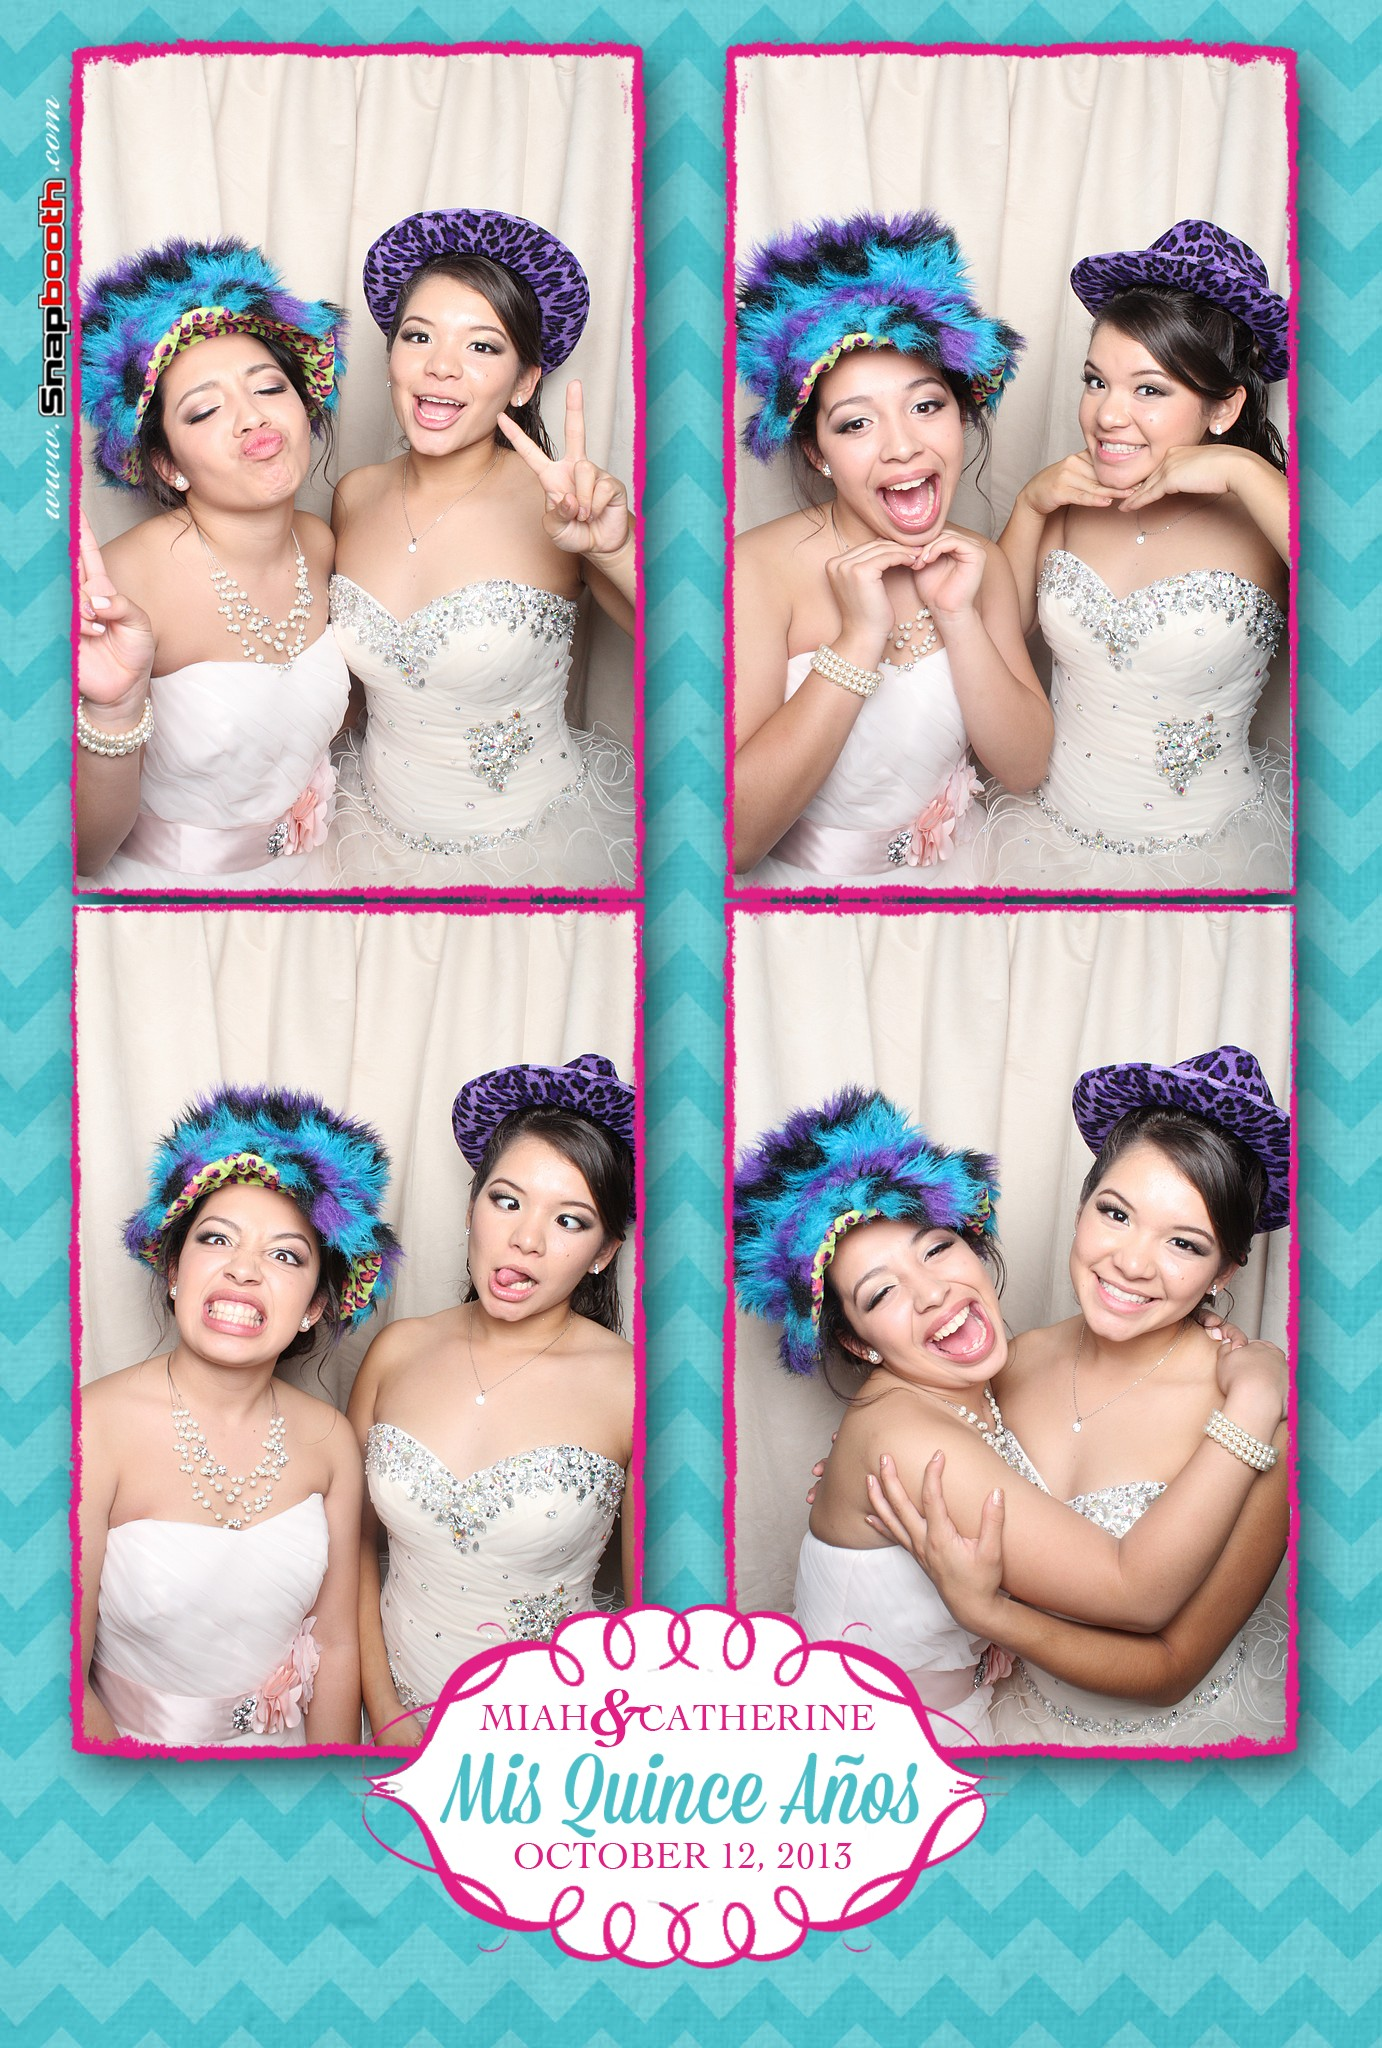 //www.snapbooth.com/wp-content/uploads/2017/08/Miah-Catherine-Quince.jpg